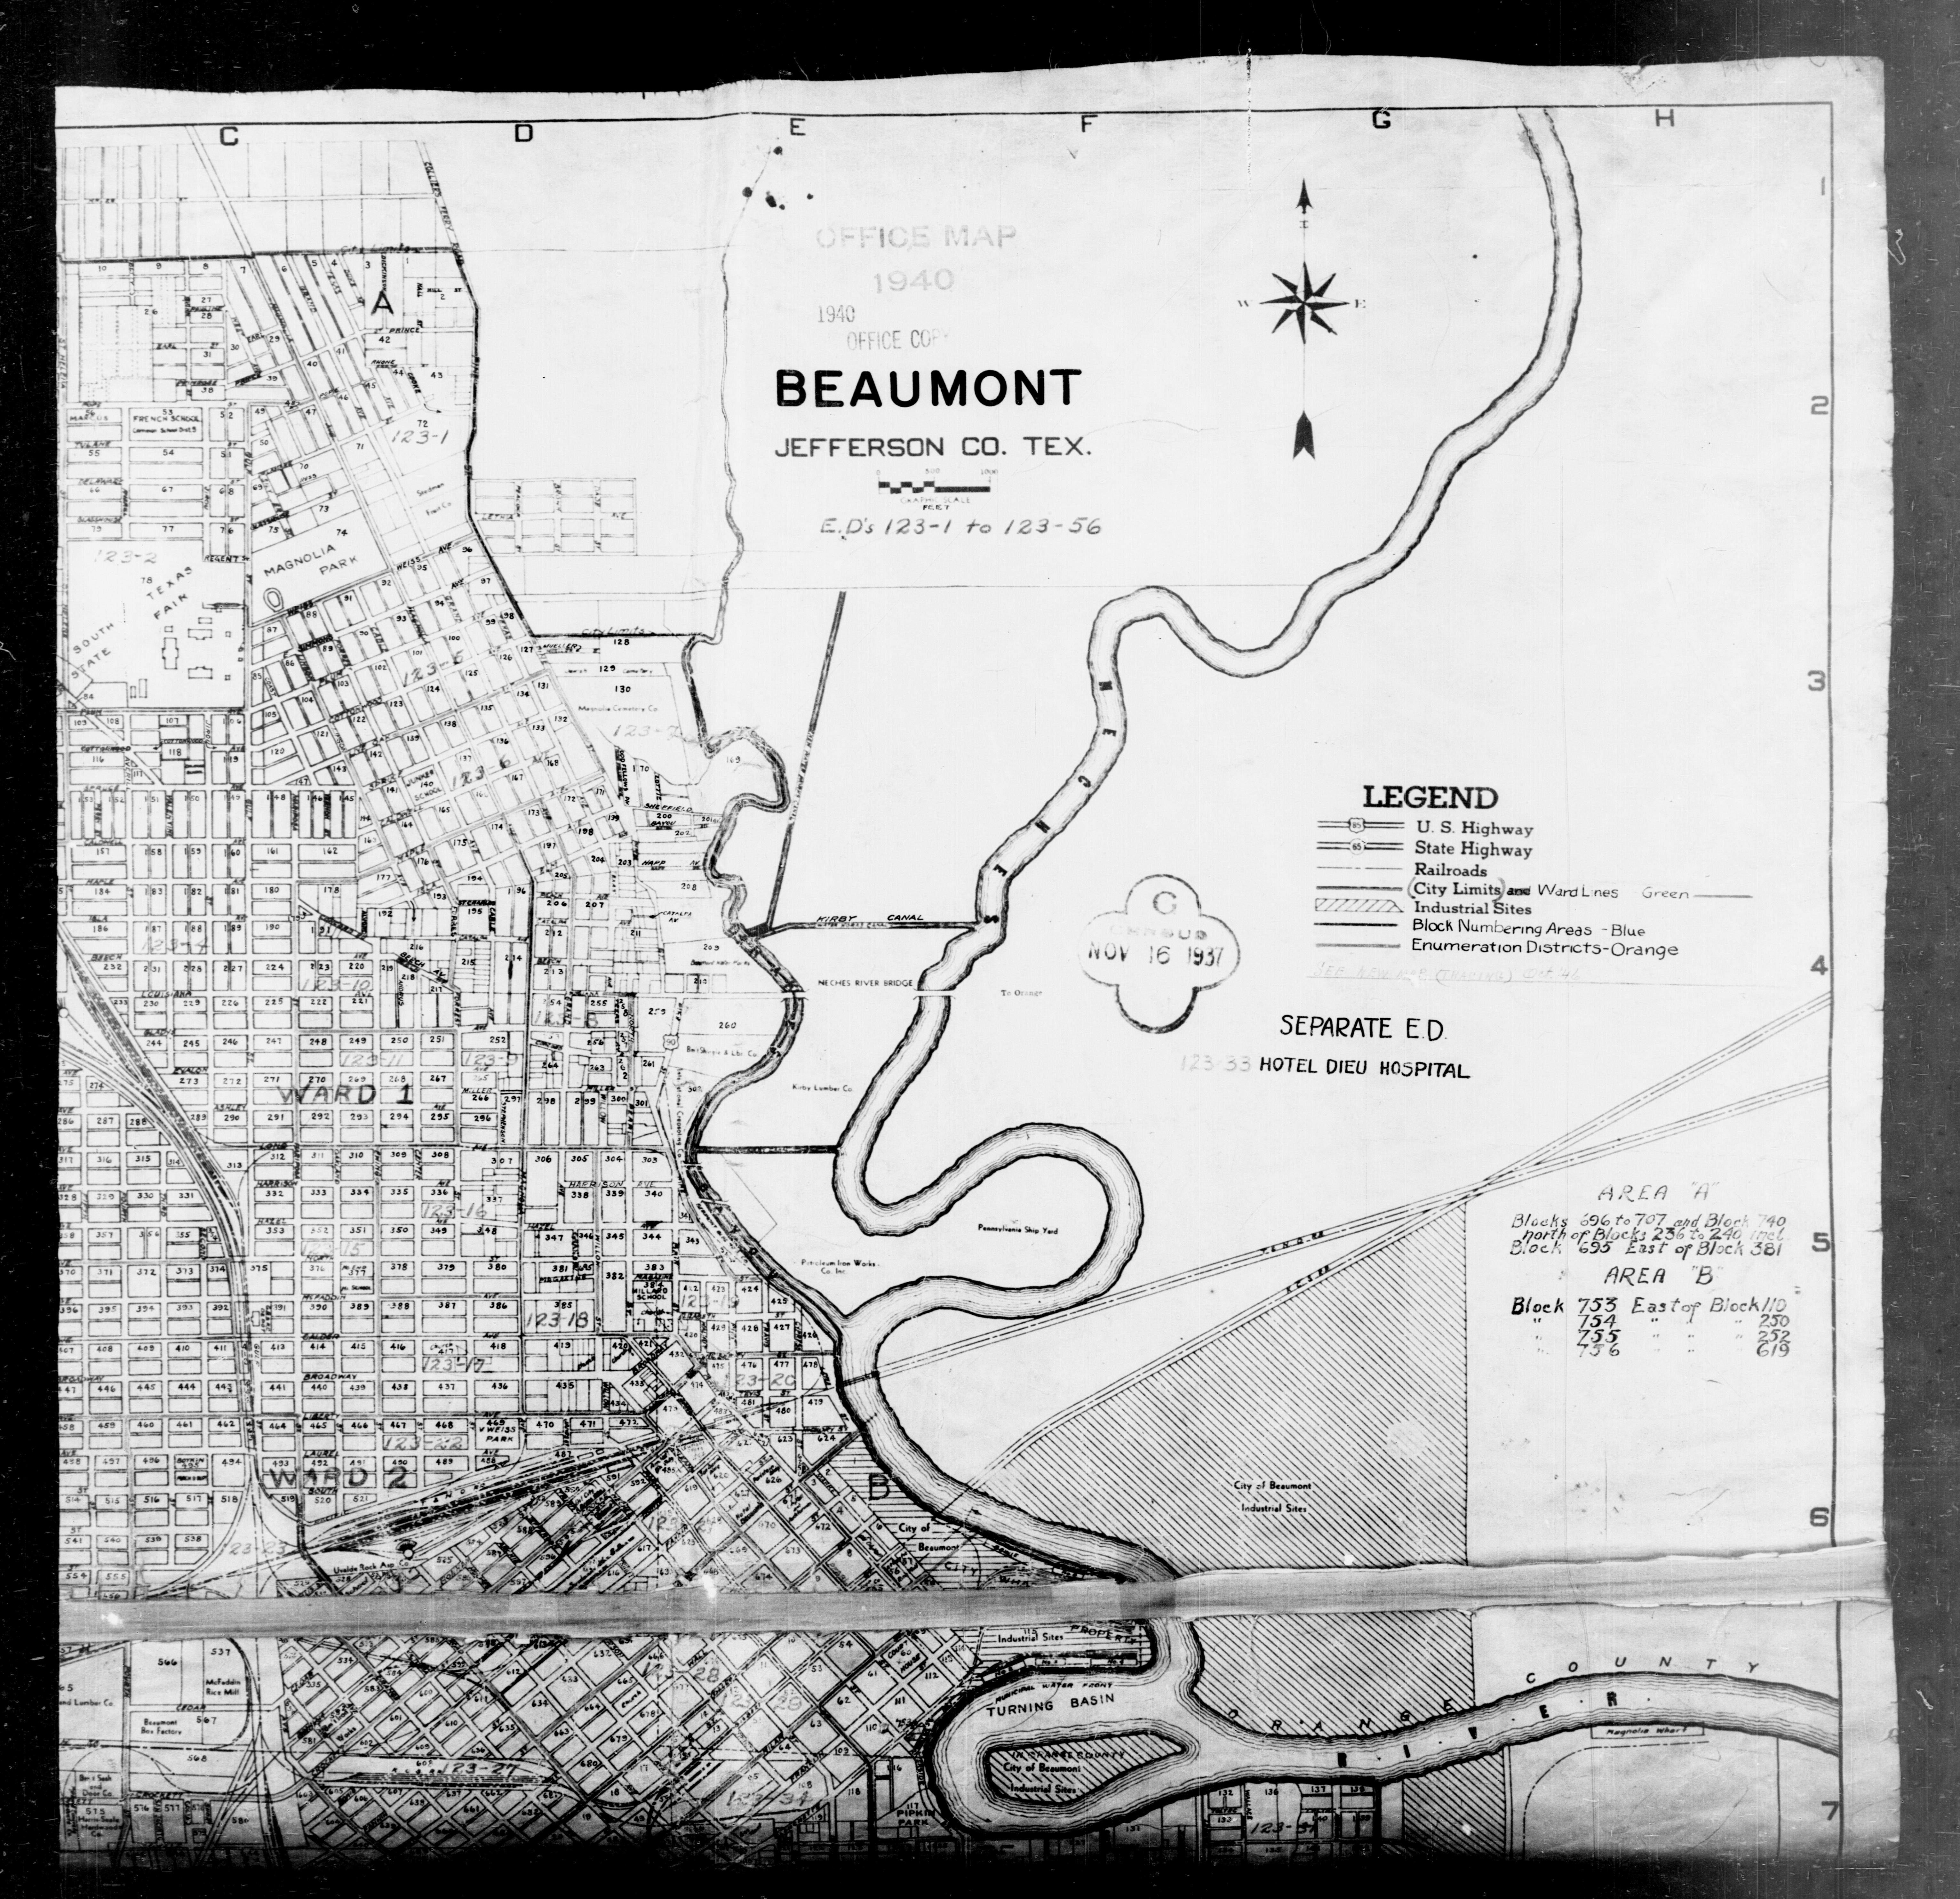 Map Of Beaumont Texas.1940 Census Texas Enumeration District Maps Perry Castaneda Map